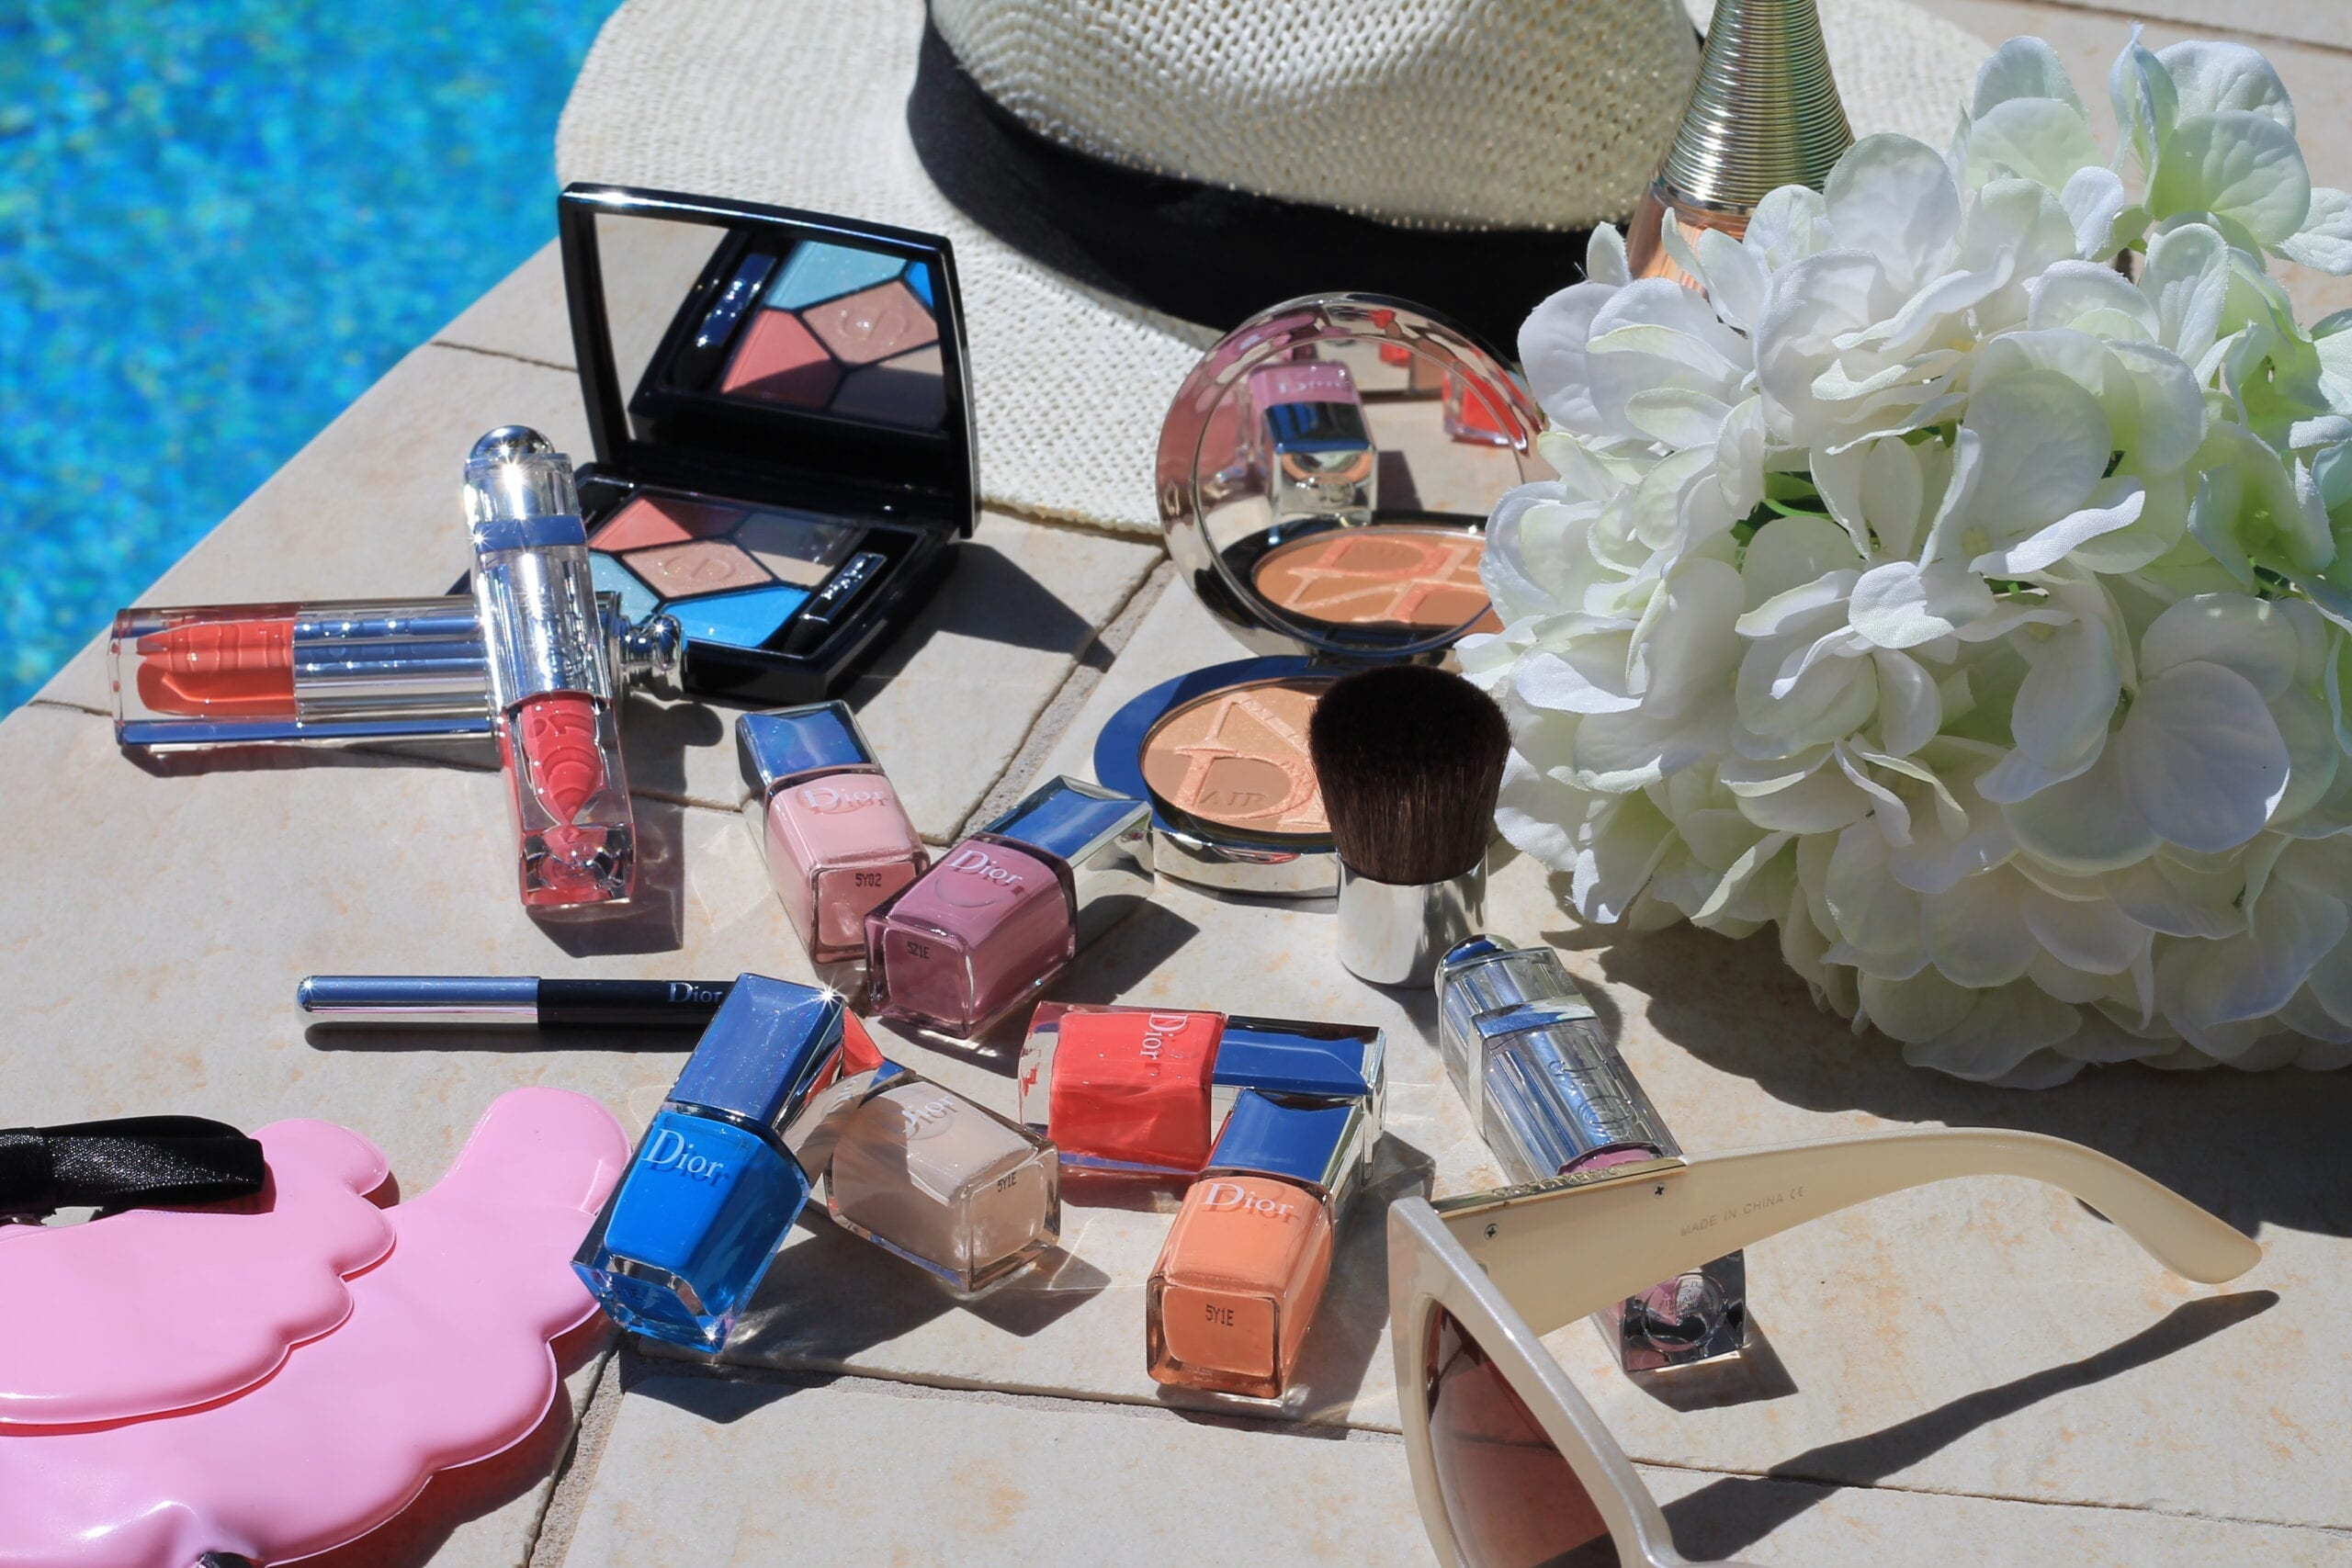 Beauty trends summer 2016, beauty trend summer 2016, theladycracy.it, elisa bellino, fashion blog, fashion bloggers, fashion blogger italia, fashion bloggers italiane, beauty blogger dior, dior makeup 2016, novità dior, profumi dior buoni, j adore dior eau de toilette nuovo, bain de mer palette dior, make up estate 2016, elisa bellino, web influencer italia, milky dots dior,